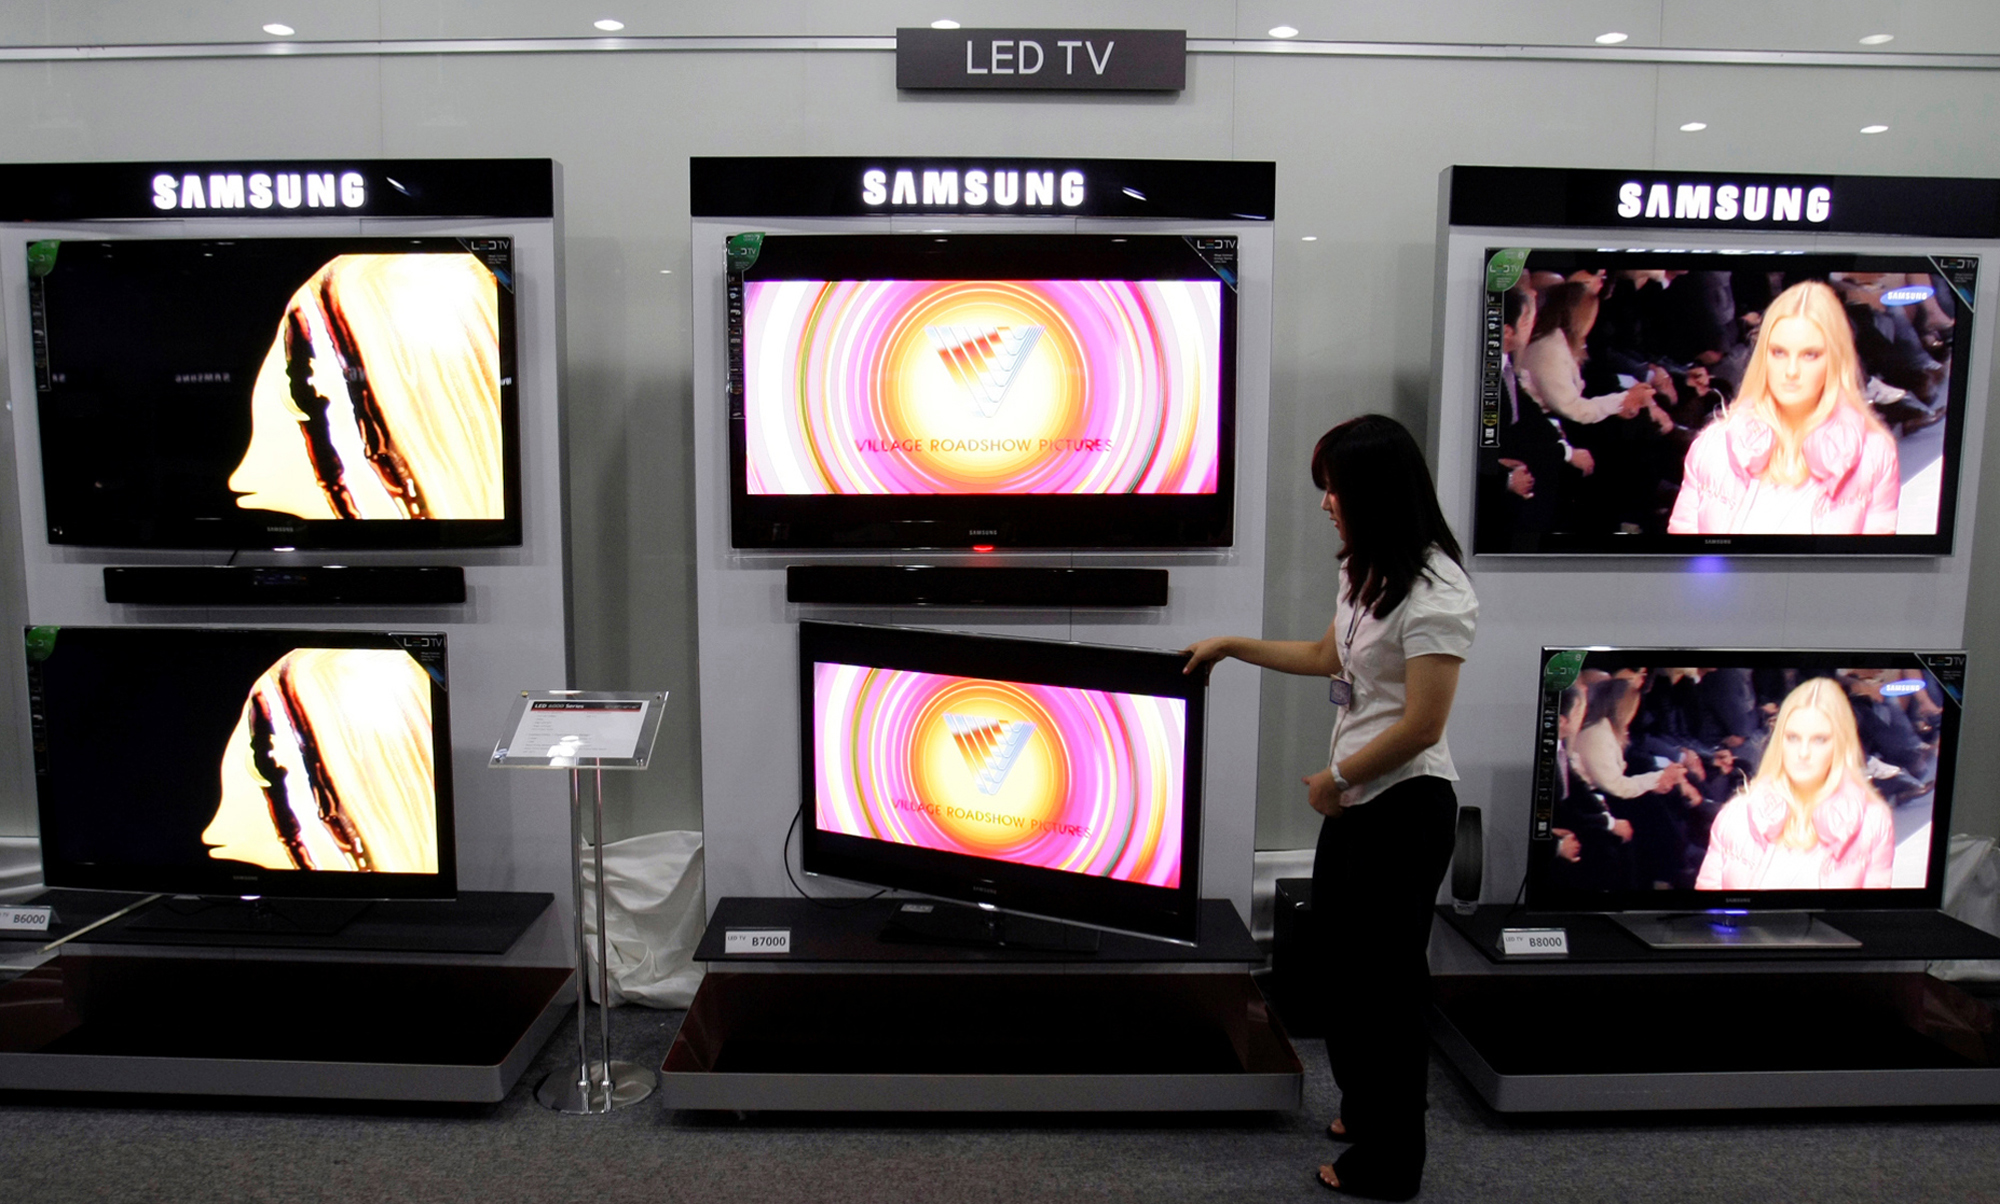 An employee of Samsung Electronics Co. is seen adjusting a LED TV at the company's showroom in Suwon, south of Seoul, South Korea in this July 14, 200...